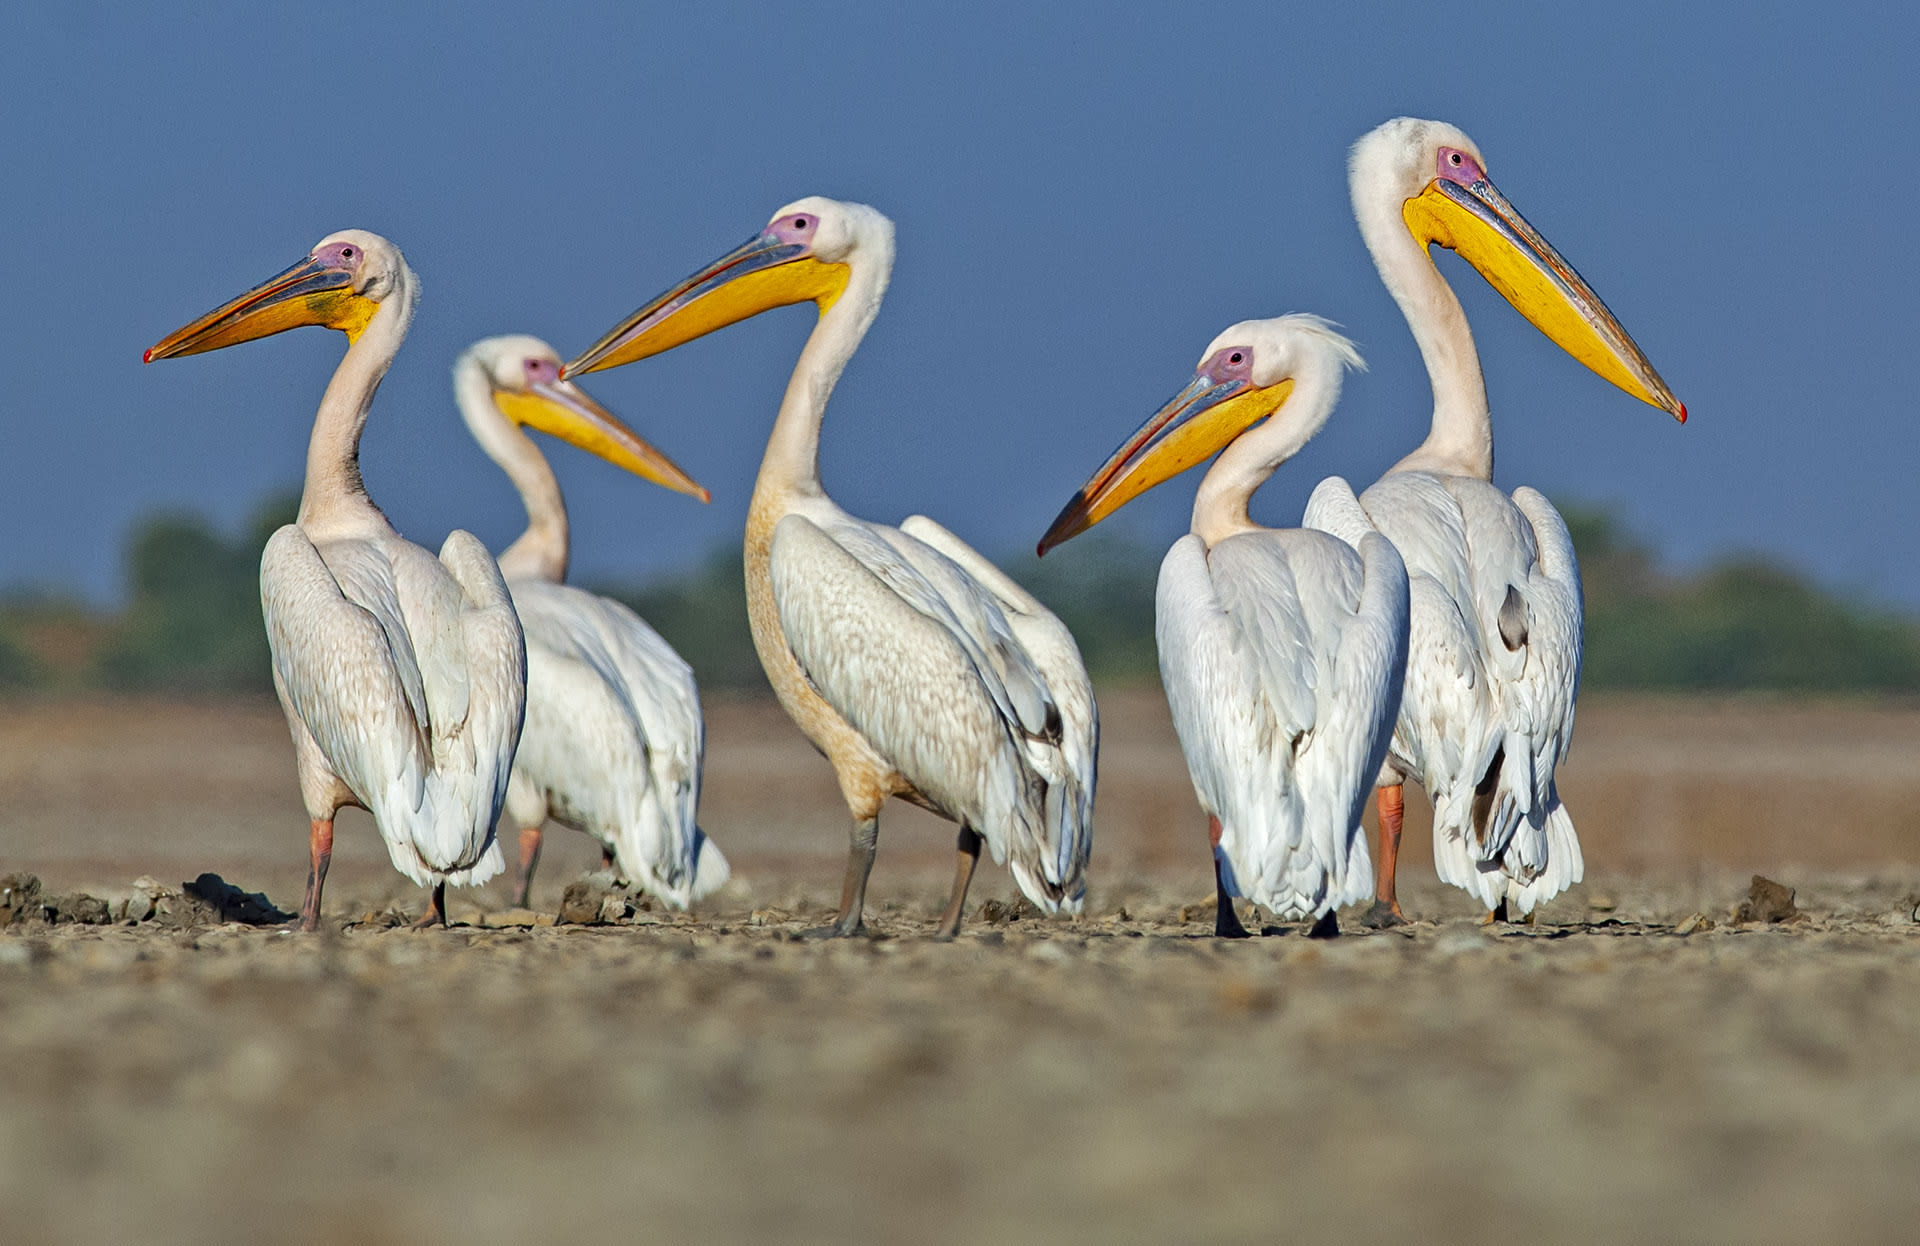 Pelicans in Little Rann of Kutch. Photo: Dhritiman Mukherjee  Cover photo: The iconic Asiatic wild ass or khur which is the flair of the landscape. Cover photo: Dhritiman Mukherjee